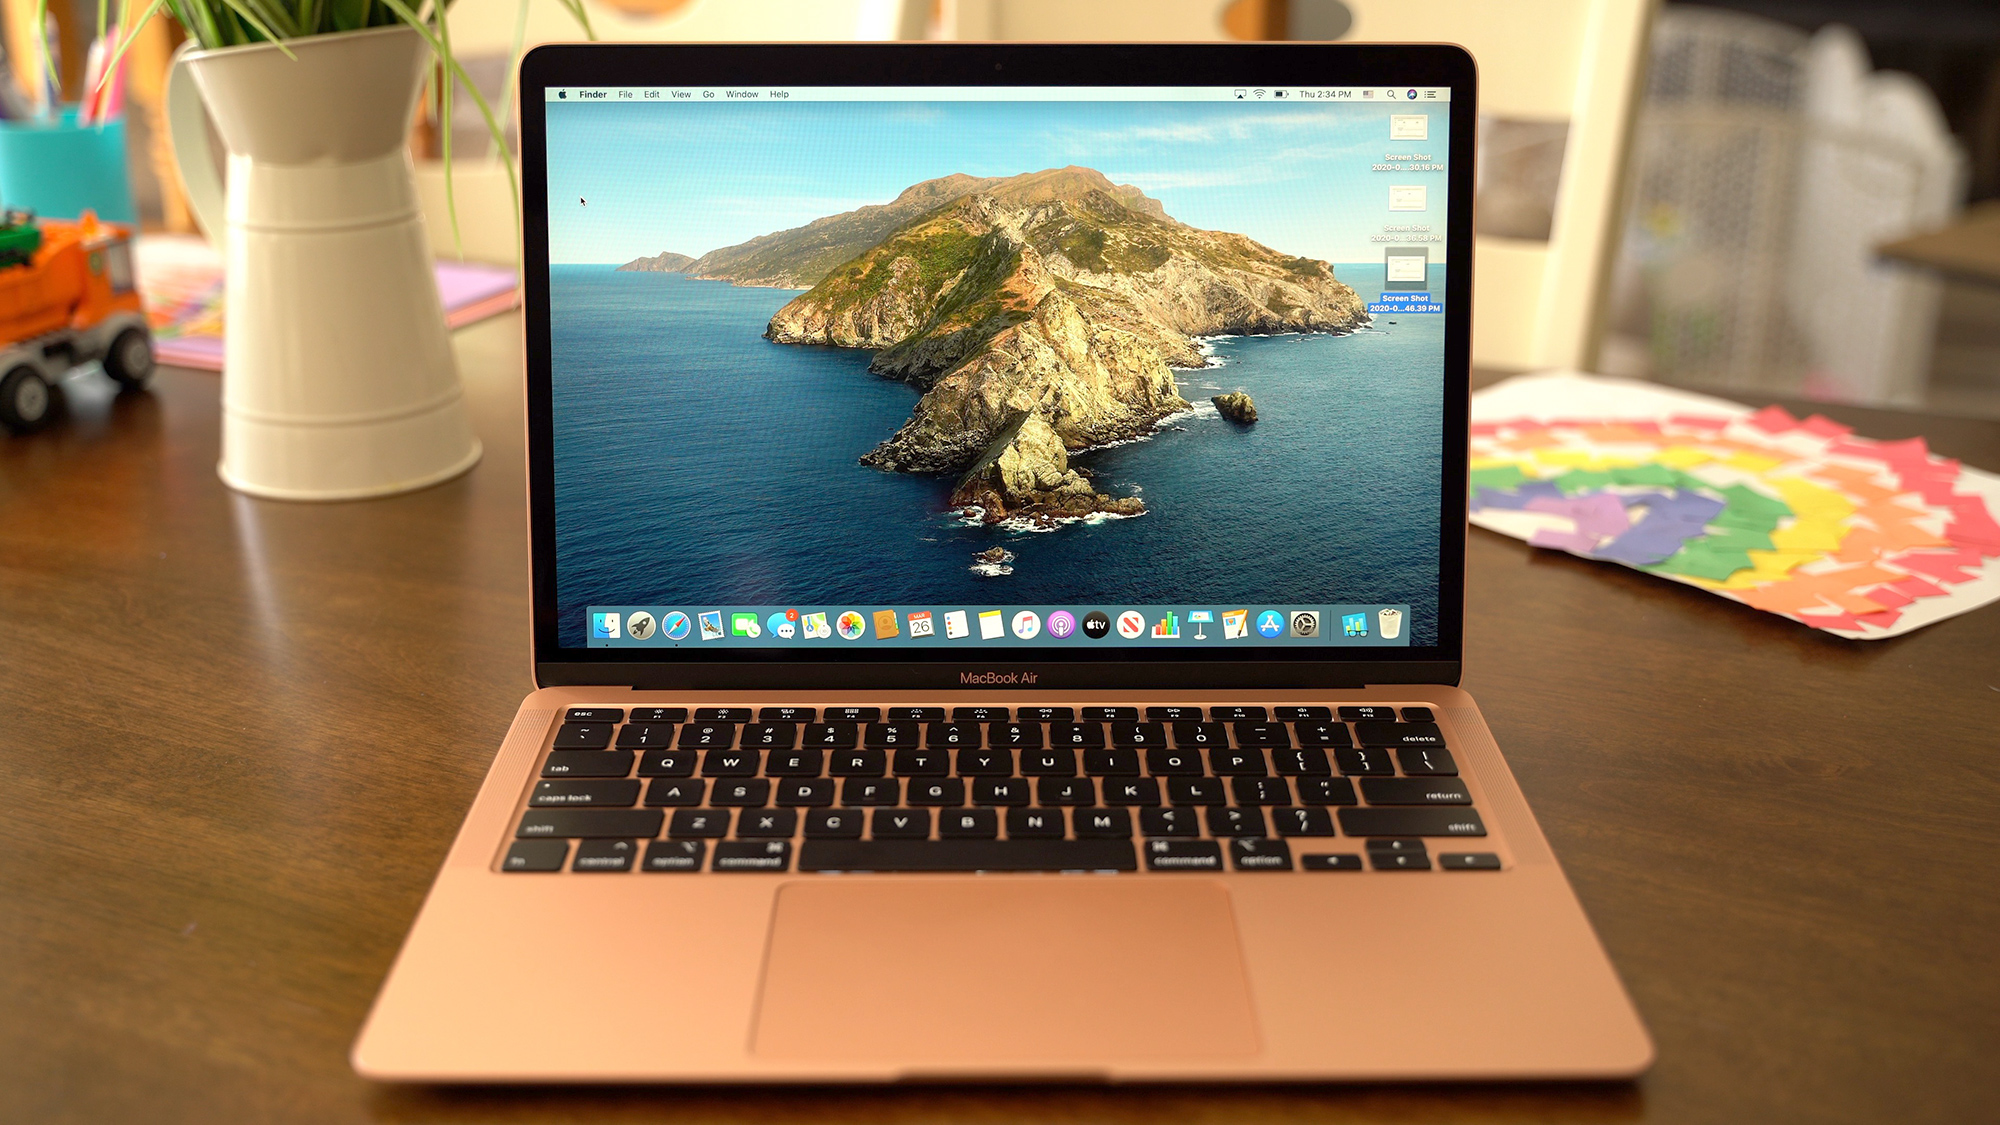 Hands-On With the New $999 MacBook Air - MacRumors